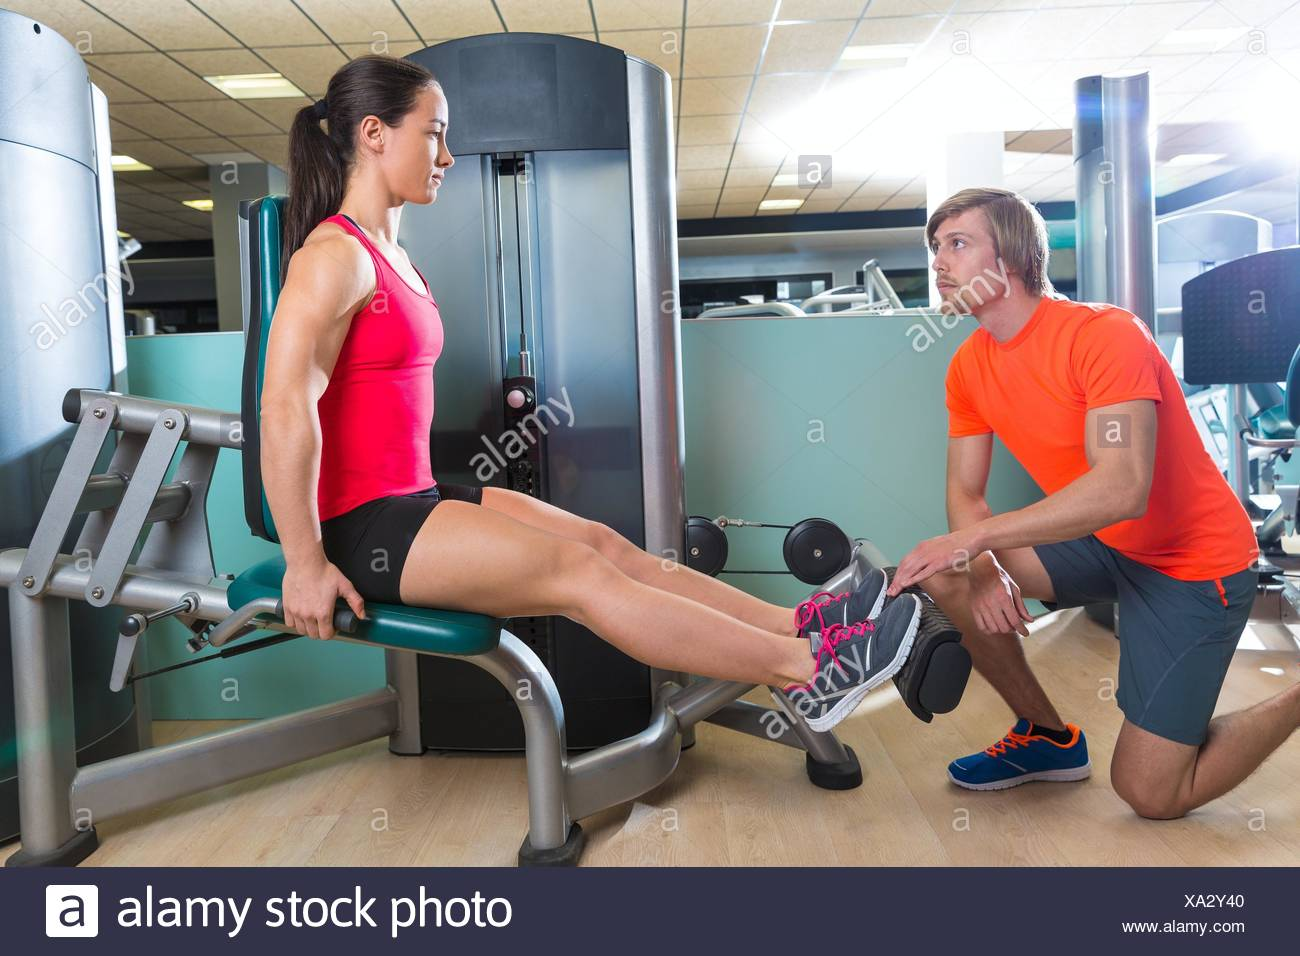 Calf extension woman at gym exercise machine workout and personal trainer woman. - Stock Image